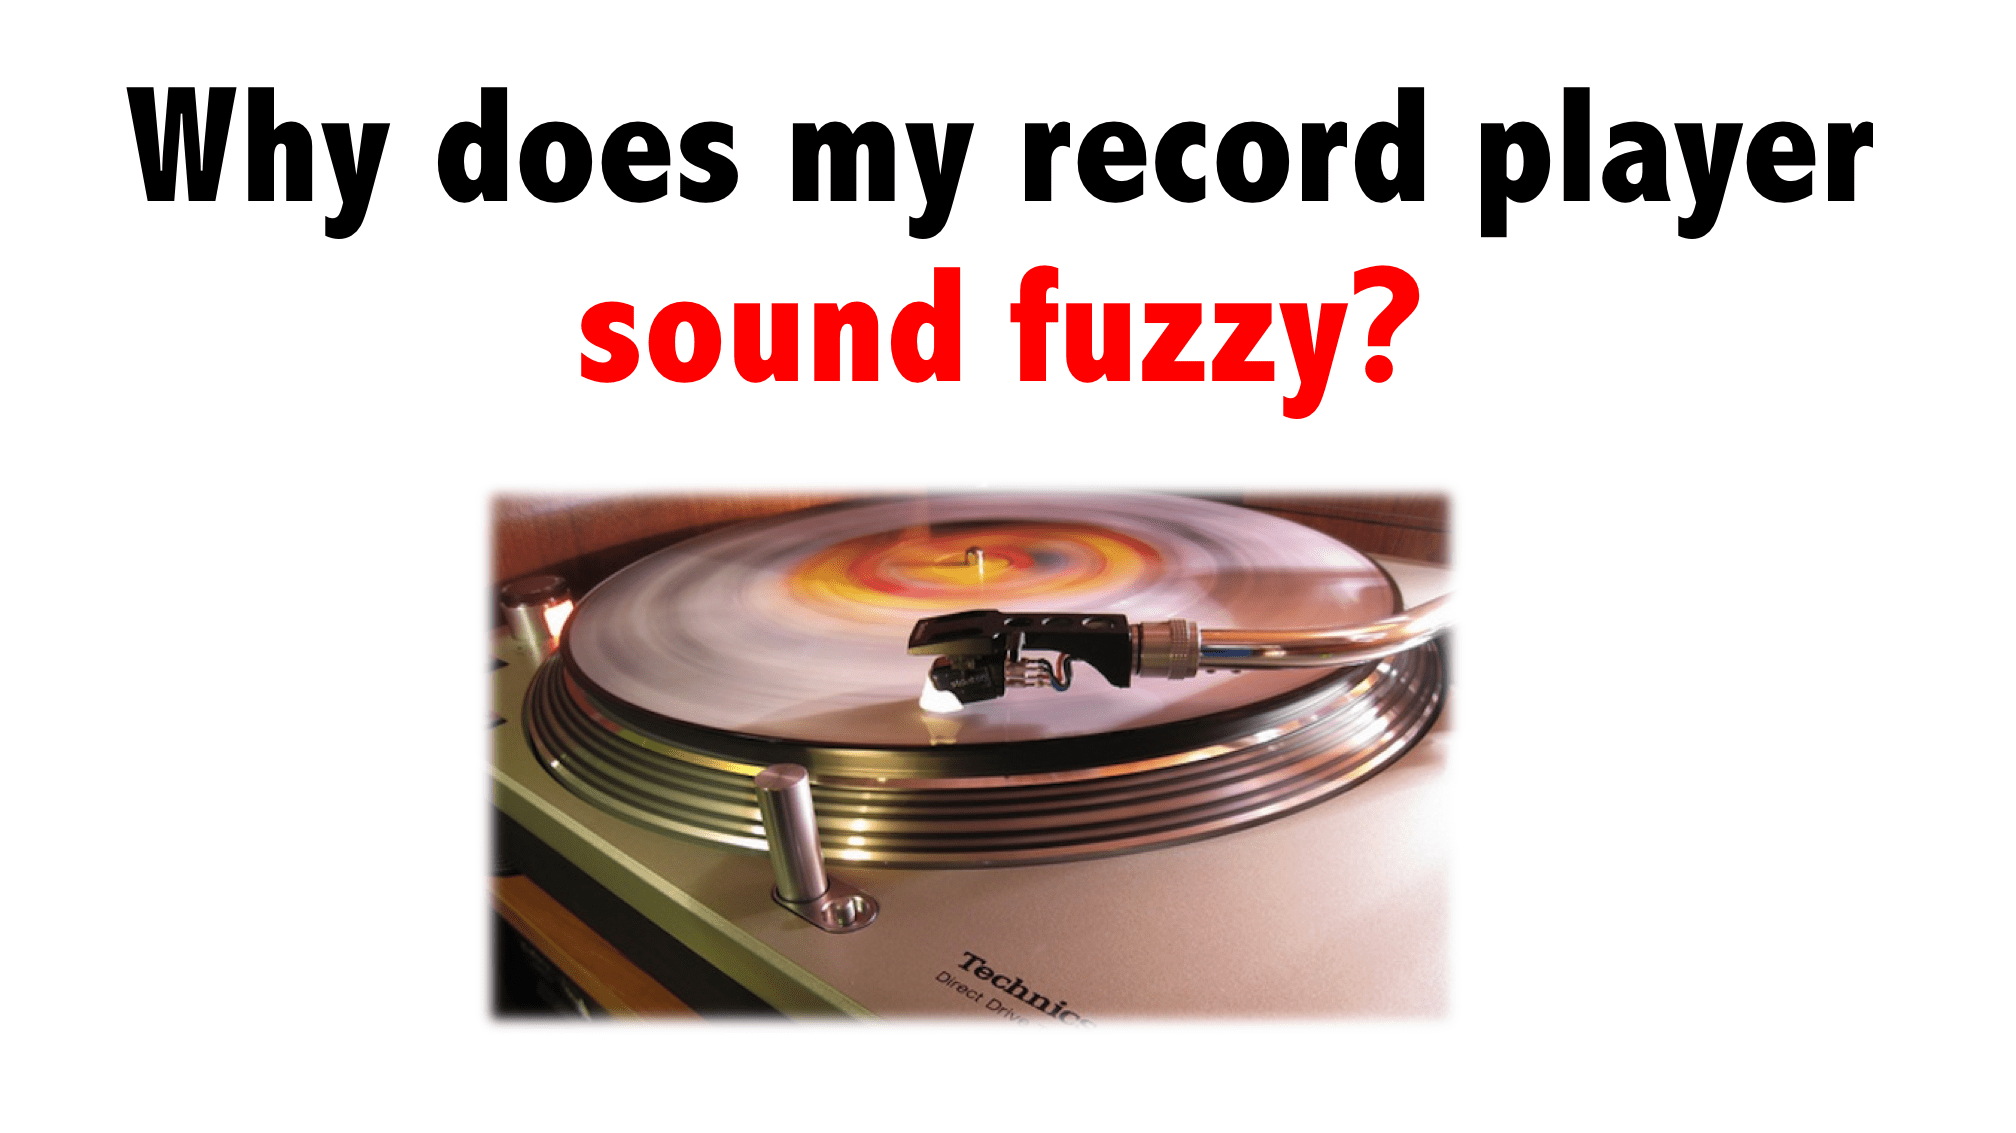 Why does my record player sound fuzzy?